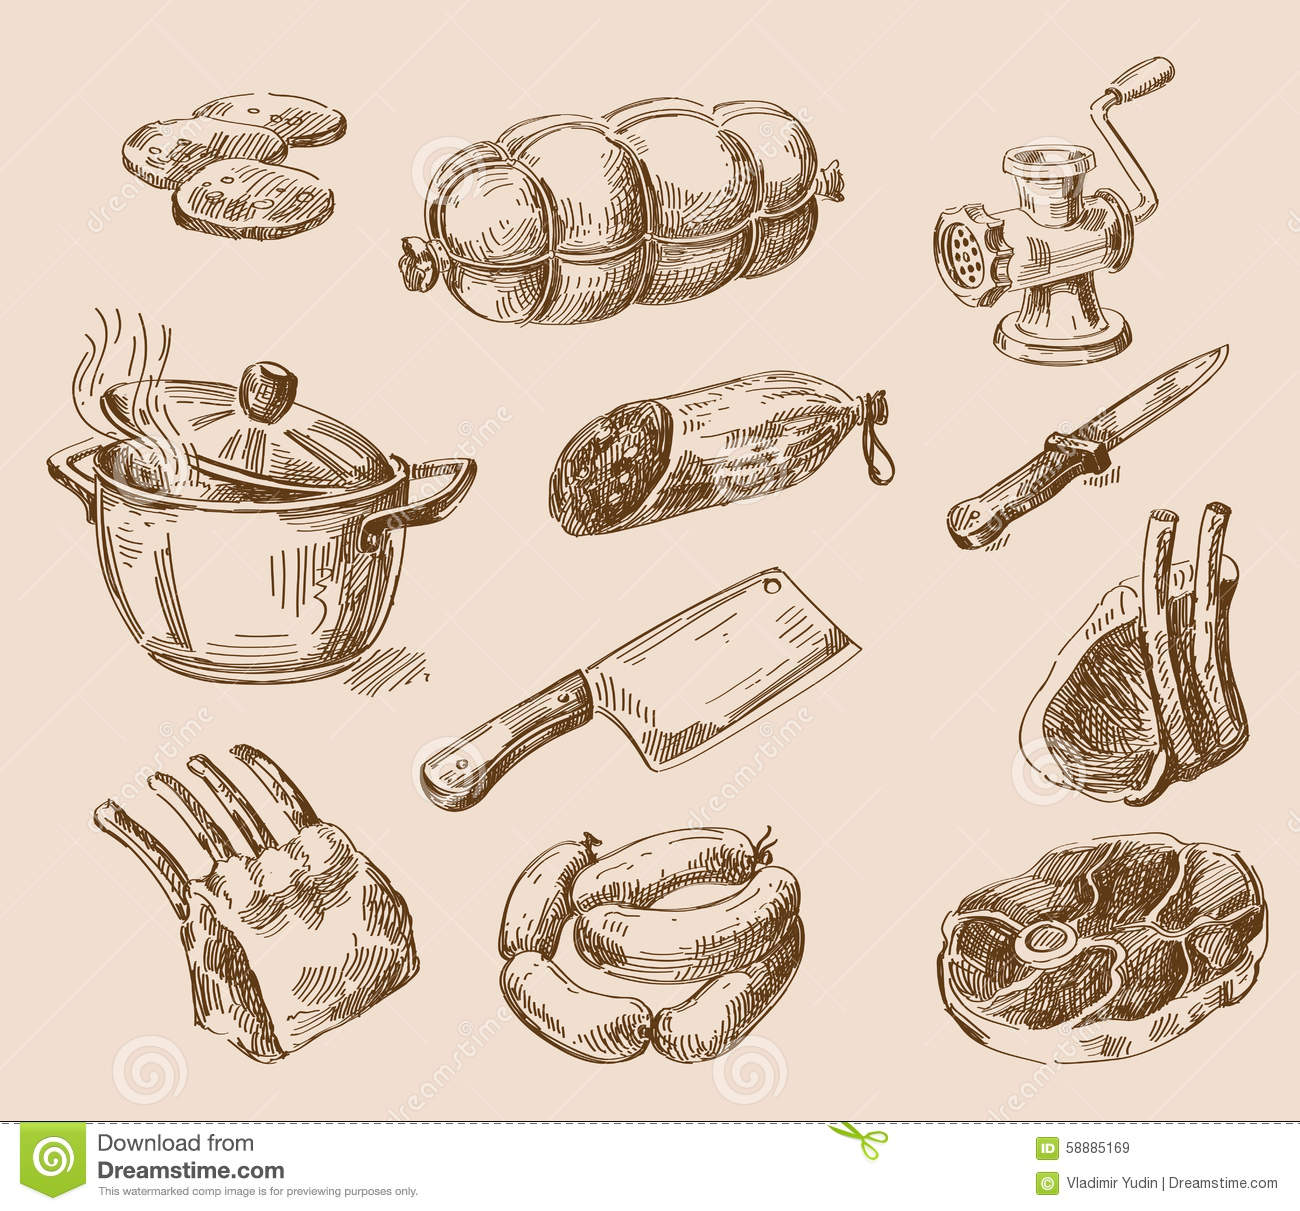 Hand Drawn Food Sketch Stock Vector. Illustration Of Doodles - 58885169